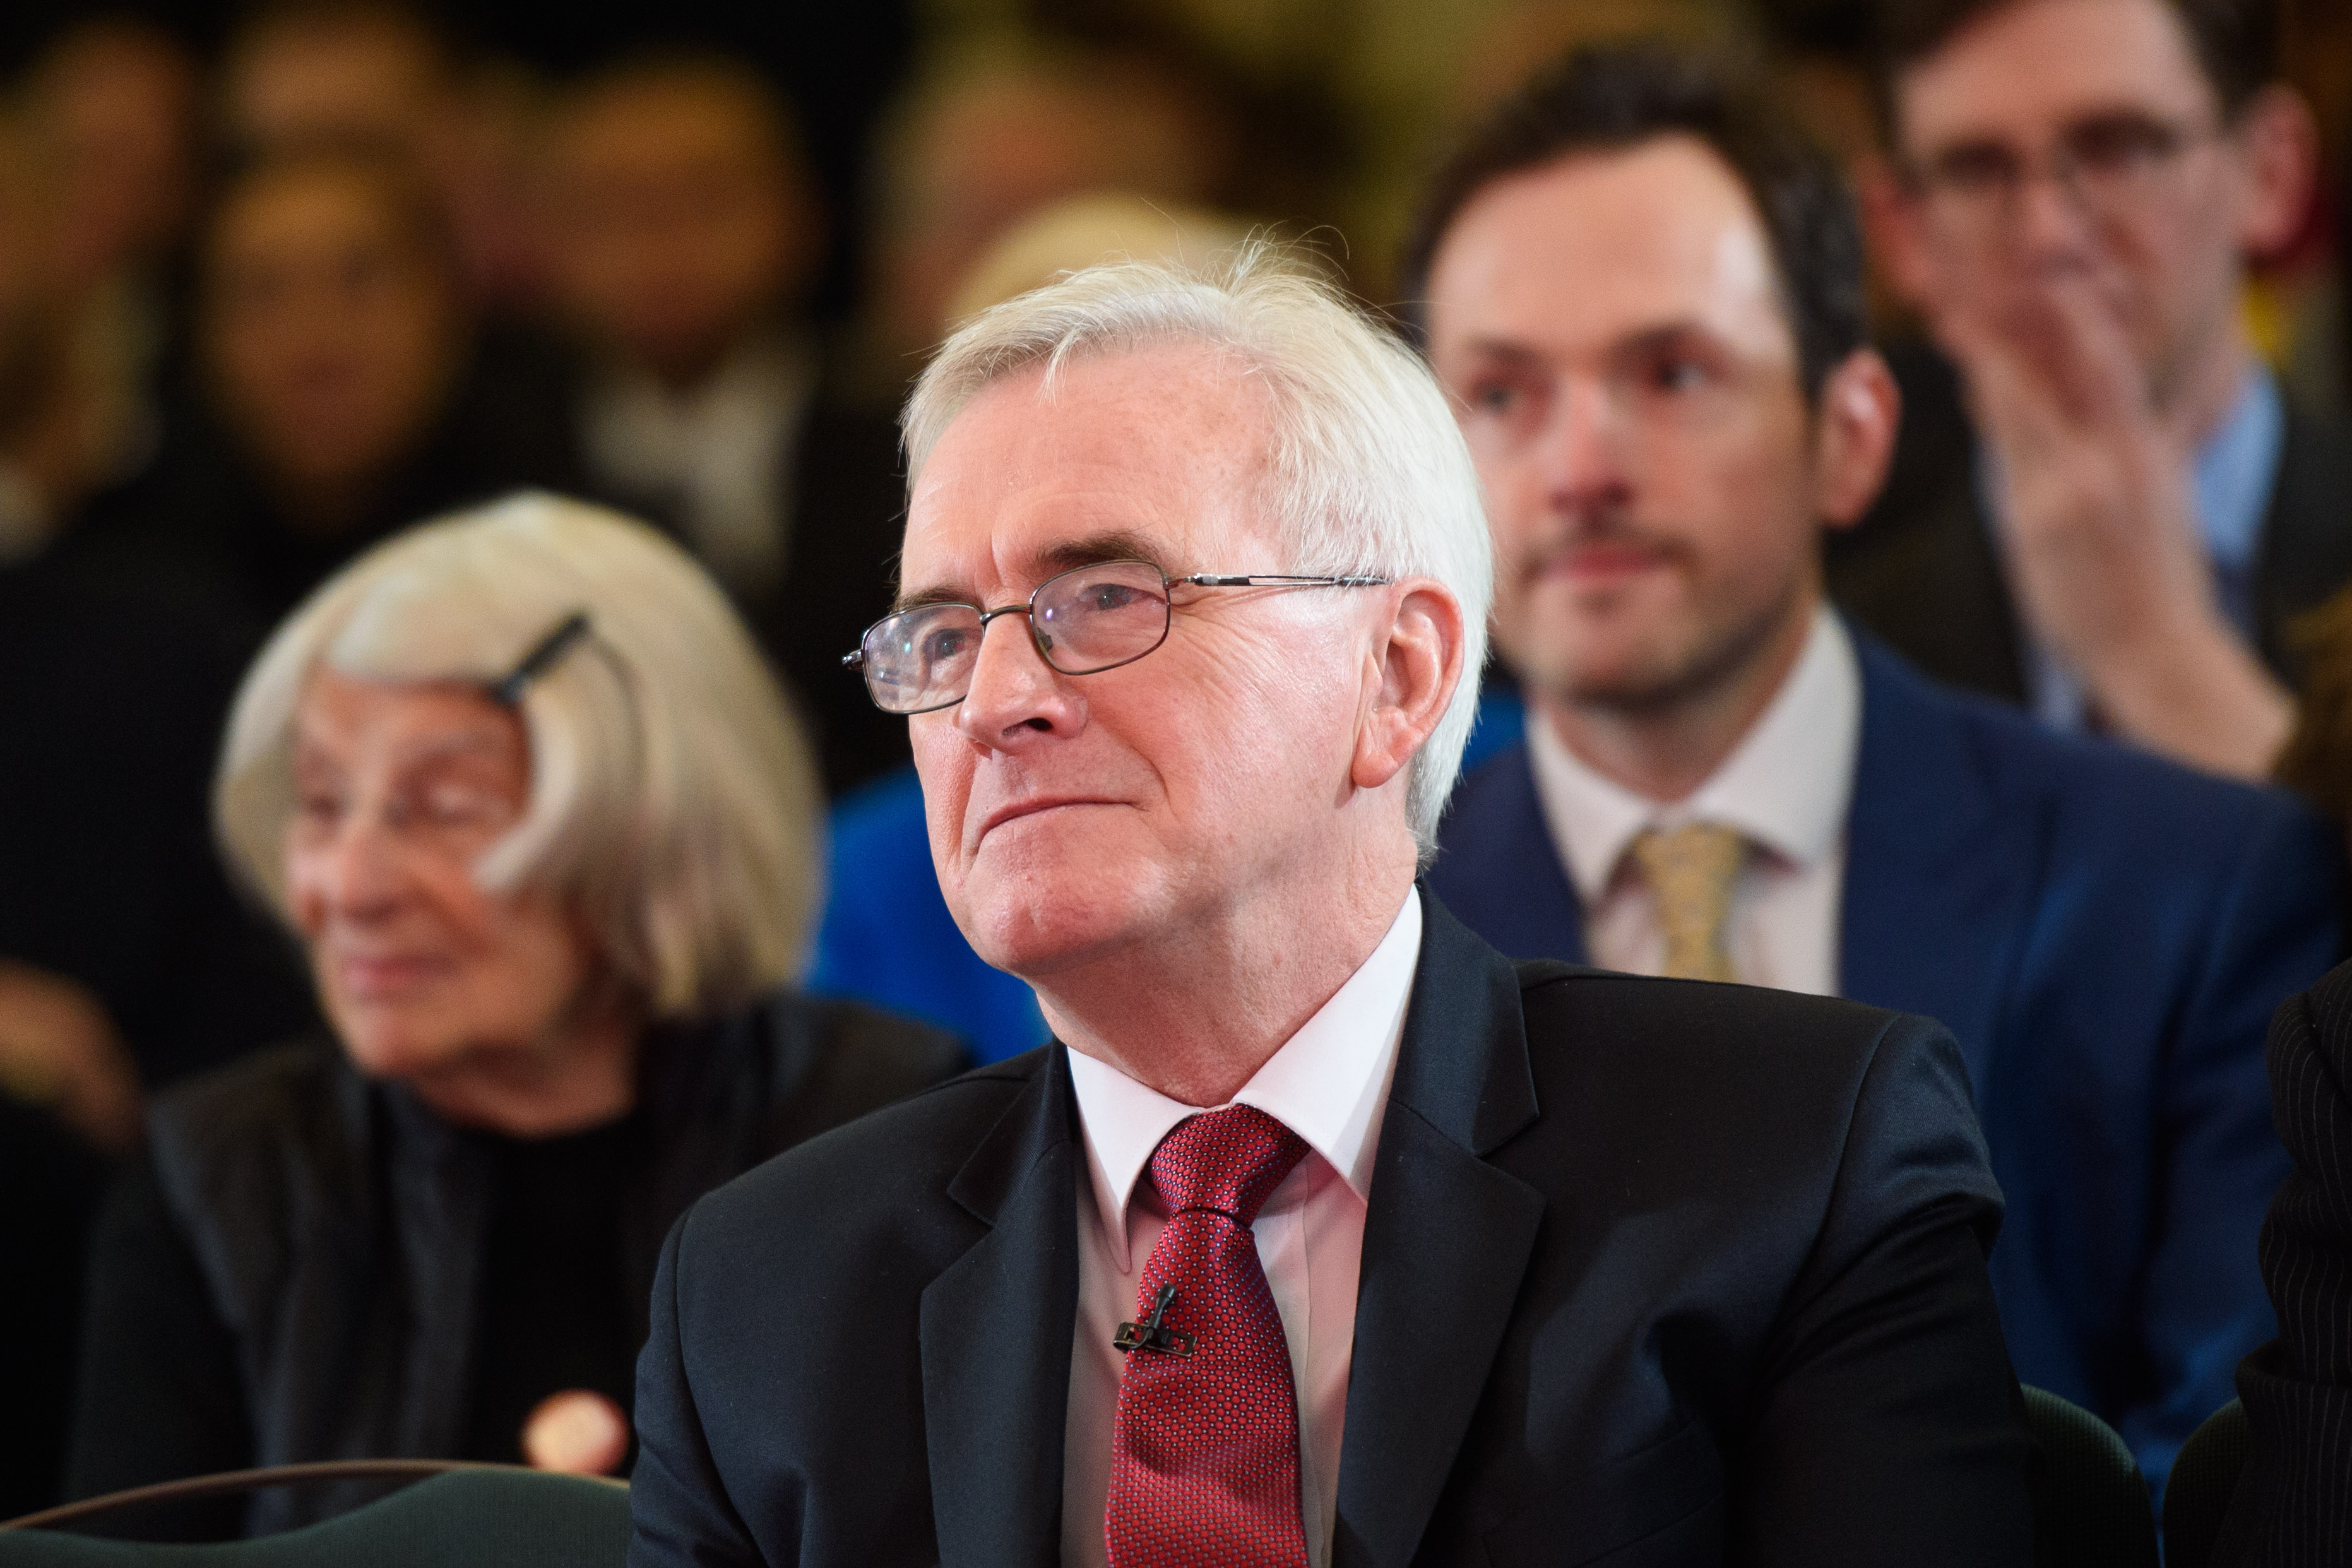 Shadow chancellor John McDonnell gives a speech on the economy, as part of Labour's general election campaign, at Church House in Westminster, London. Picture date: Tuesday November 19, 2019. Photo credit should read: Matt Crossick/Empics